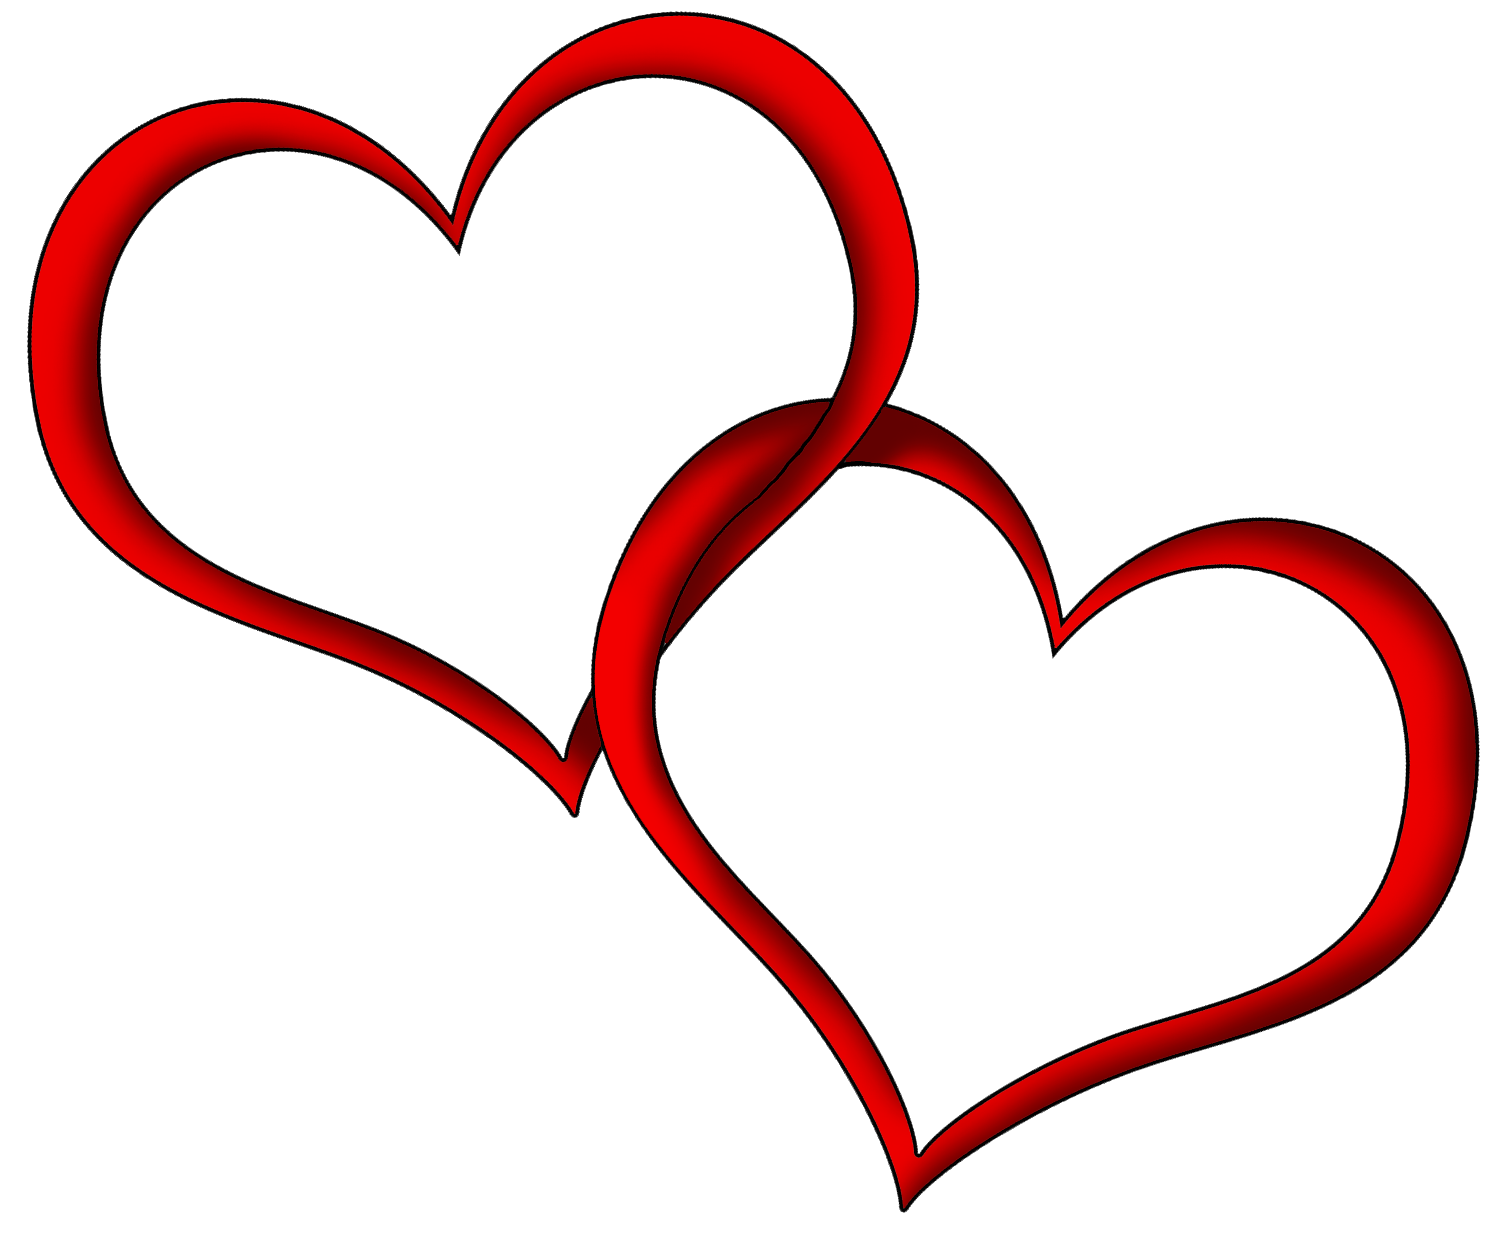 Devil heart clipart image free library Blog Post: Love & Hope, 1 Corinthians 13:7 http://denisemcolby.com ... image free library